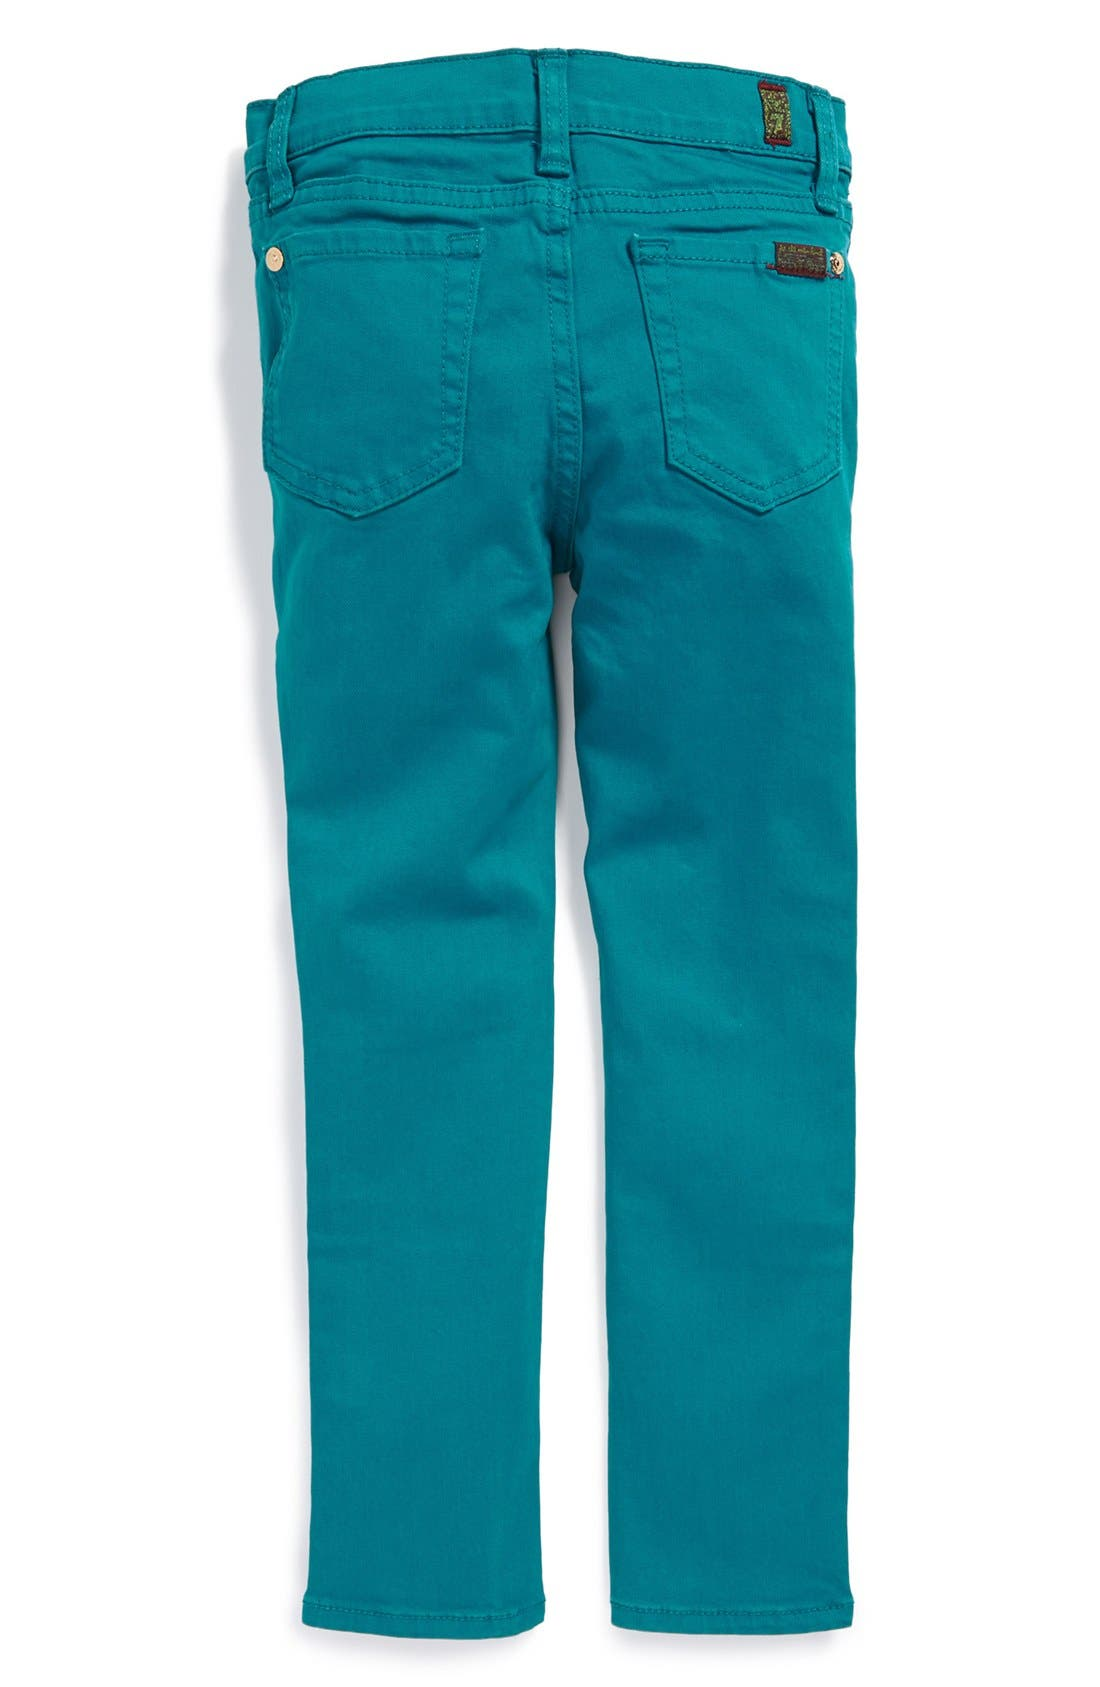 Alternate Image 1 Selected - 7 For All Mankind® 'The Skinny' Stretch Jeans (Big Girls)